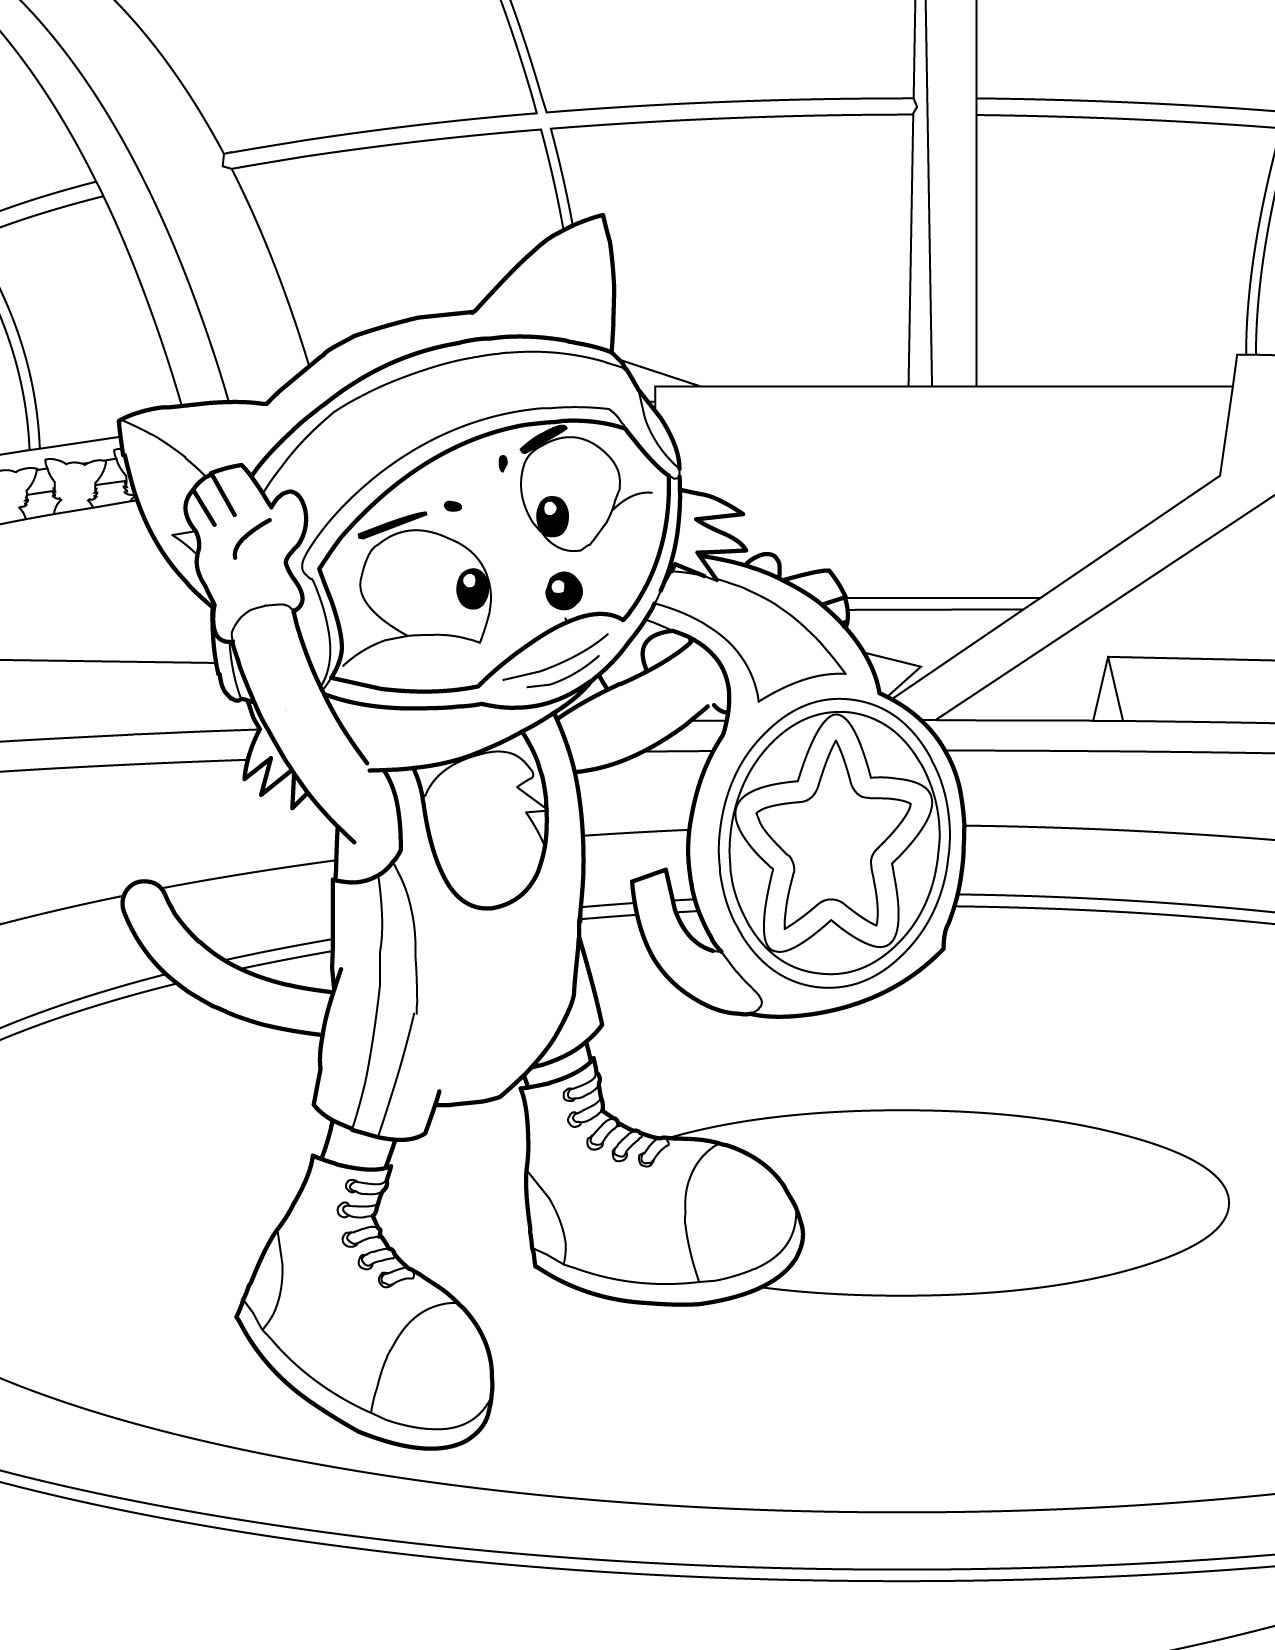 wresler coloring pages - photo#20